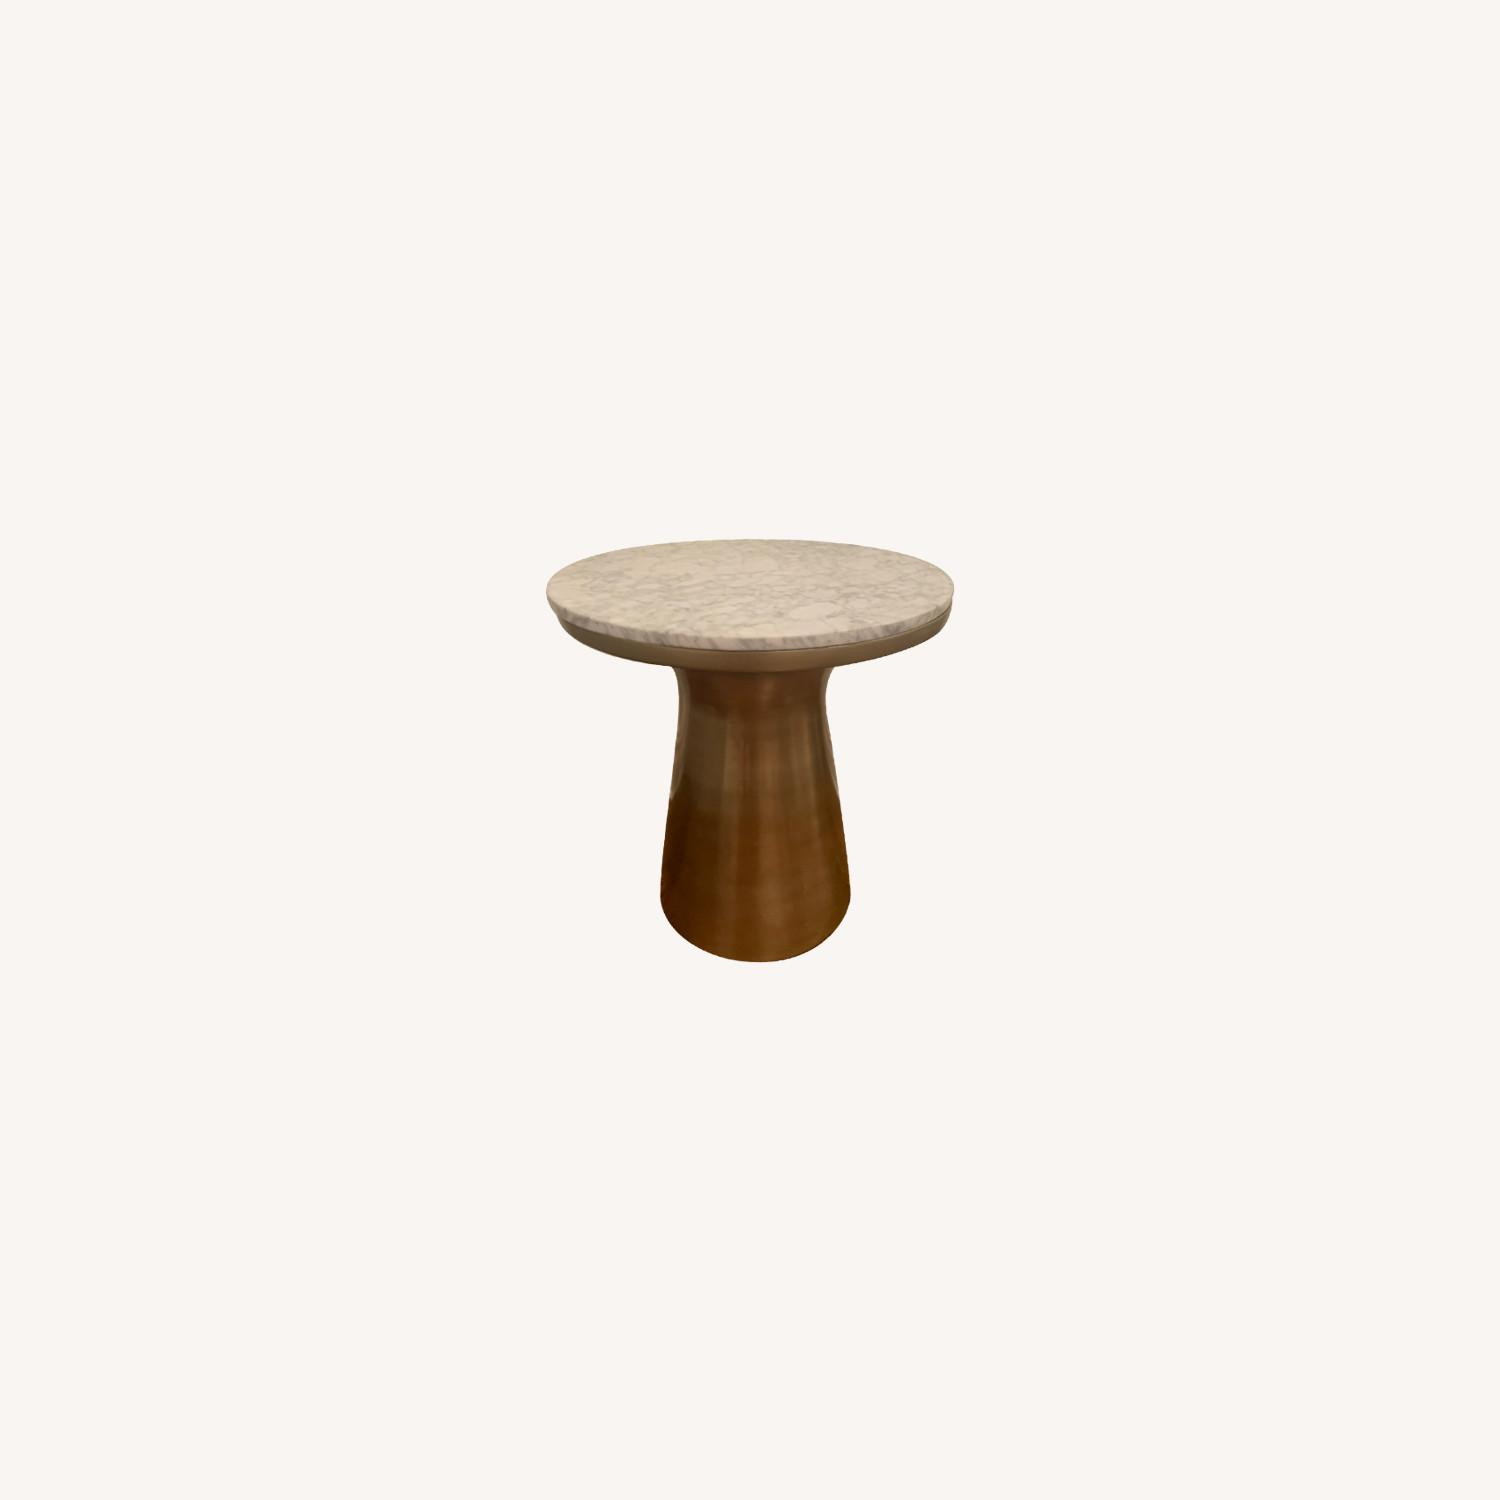 West Elm Marble and Brass Side Tables - image-0